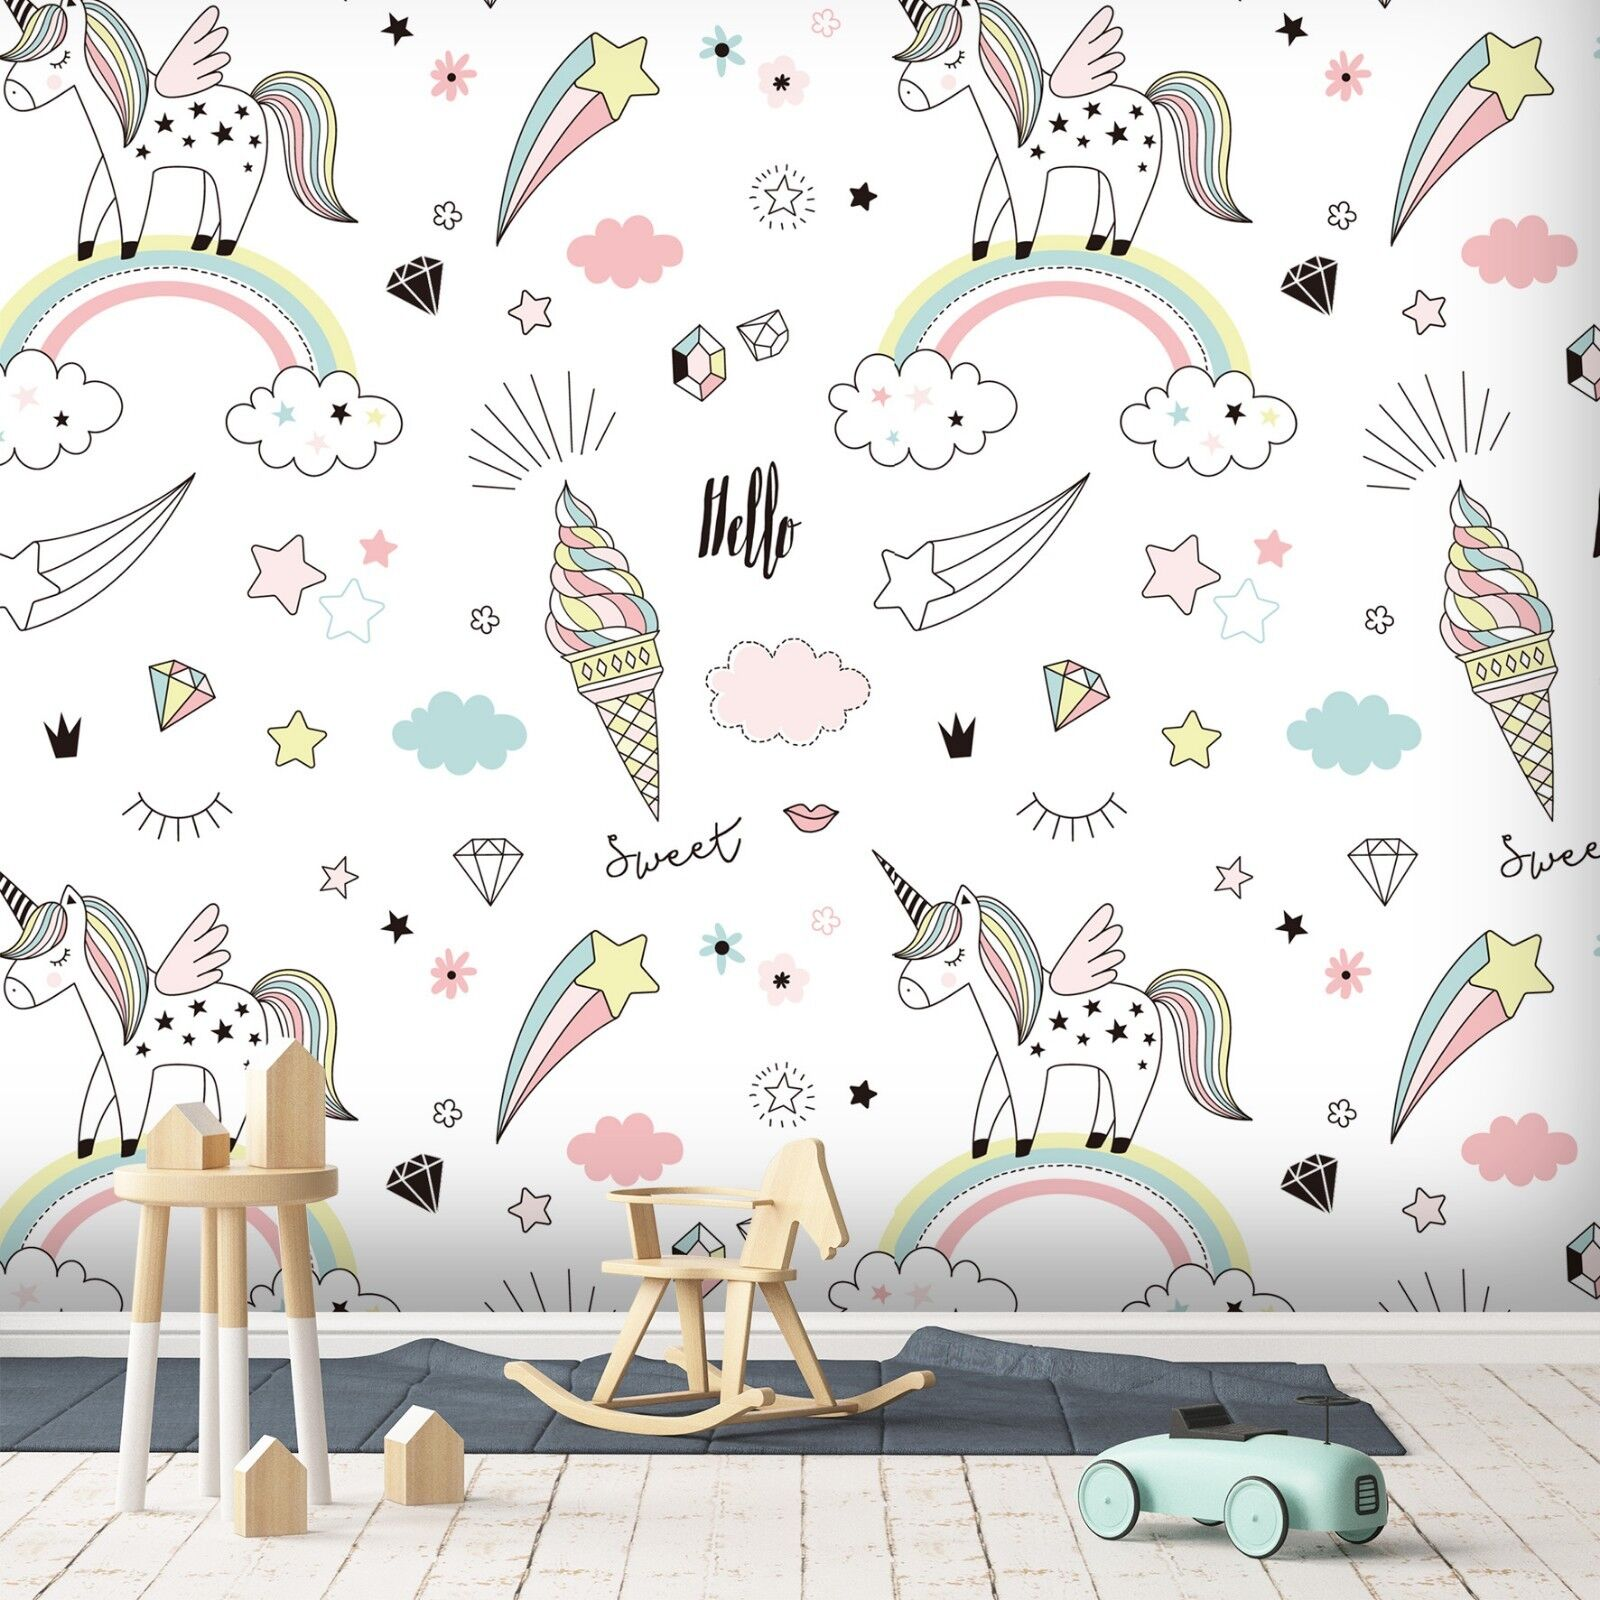 3D Unicorn Rainbow 914 Wallpaper Mural Paper Wall Print Indoor Murals CA Summer